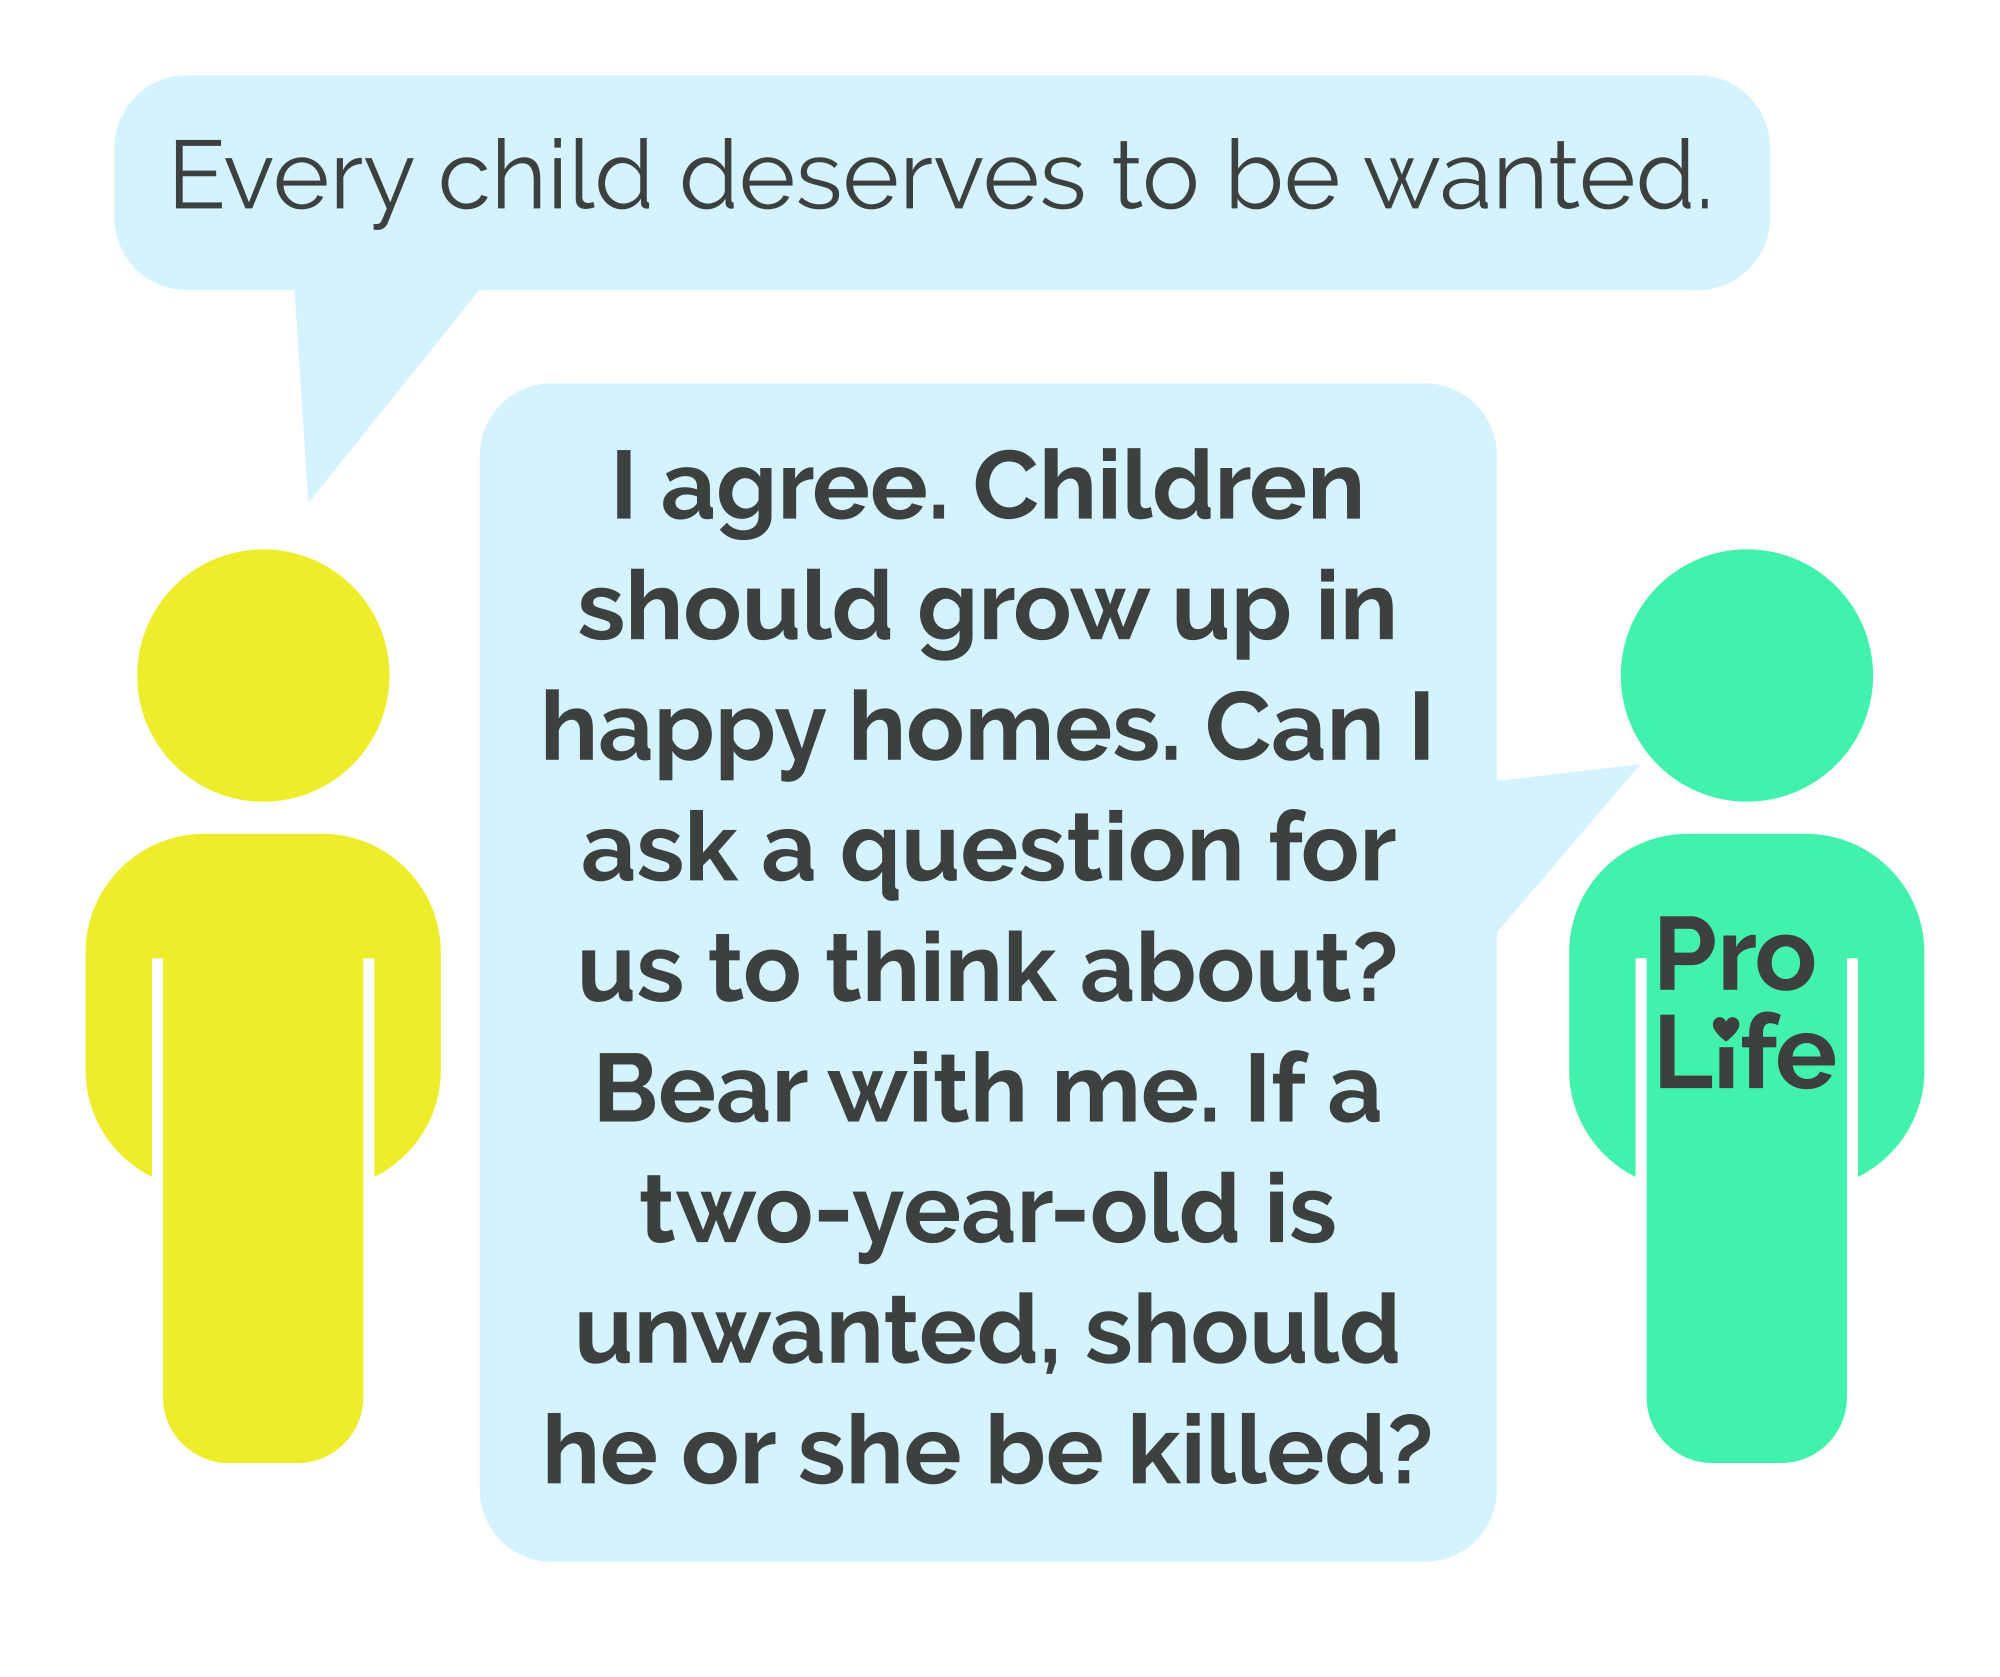 Person 1: Every child deserves to be wanted. Person 2 (our hero): I agree. Children should grow up in happy homes. Can I ask a question for us to think about? Bear with me. If a two-year-old is unwanted, should he or she be killed?